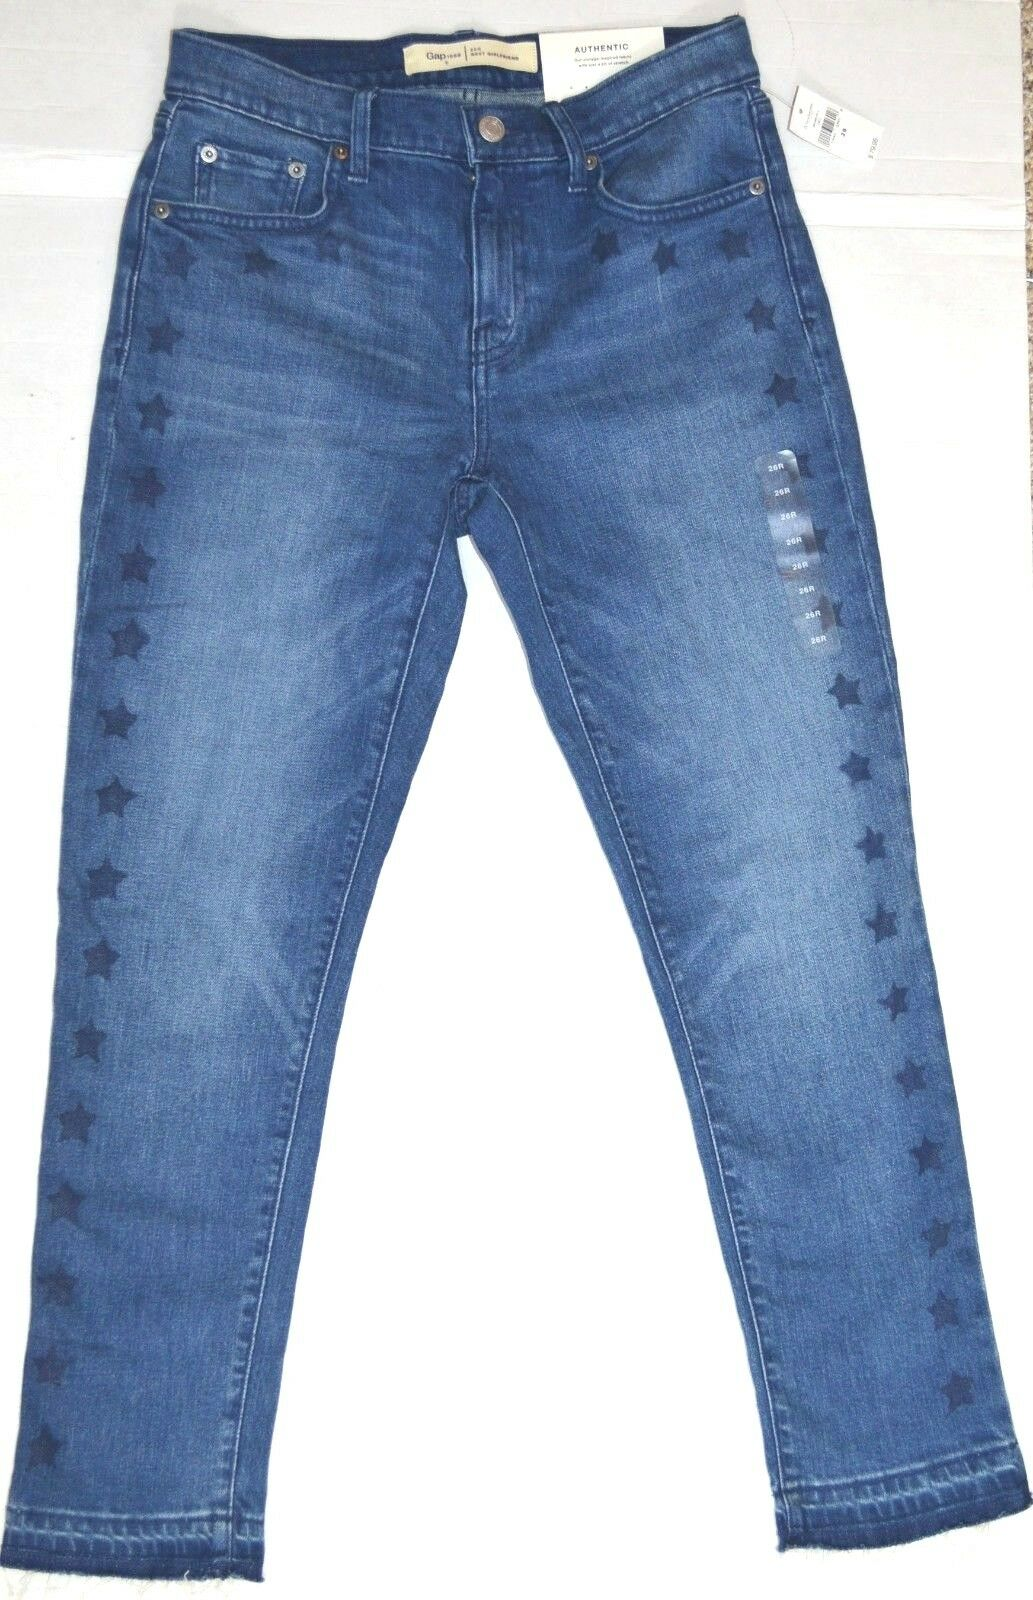 GAP 1969 Best Girlfriend Mid Rise Denim Jeans Women's 26''  Waist -New With Tags